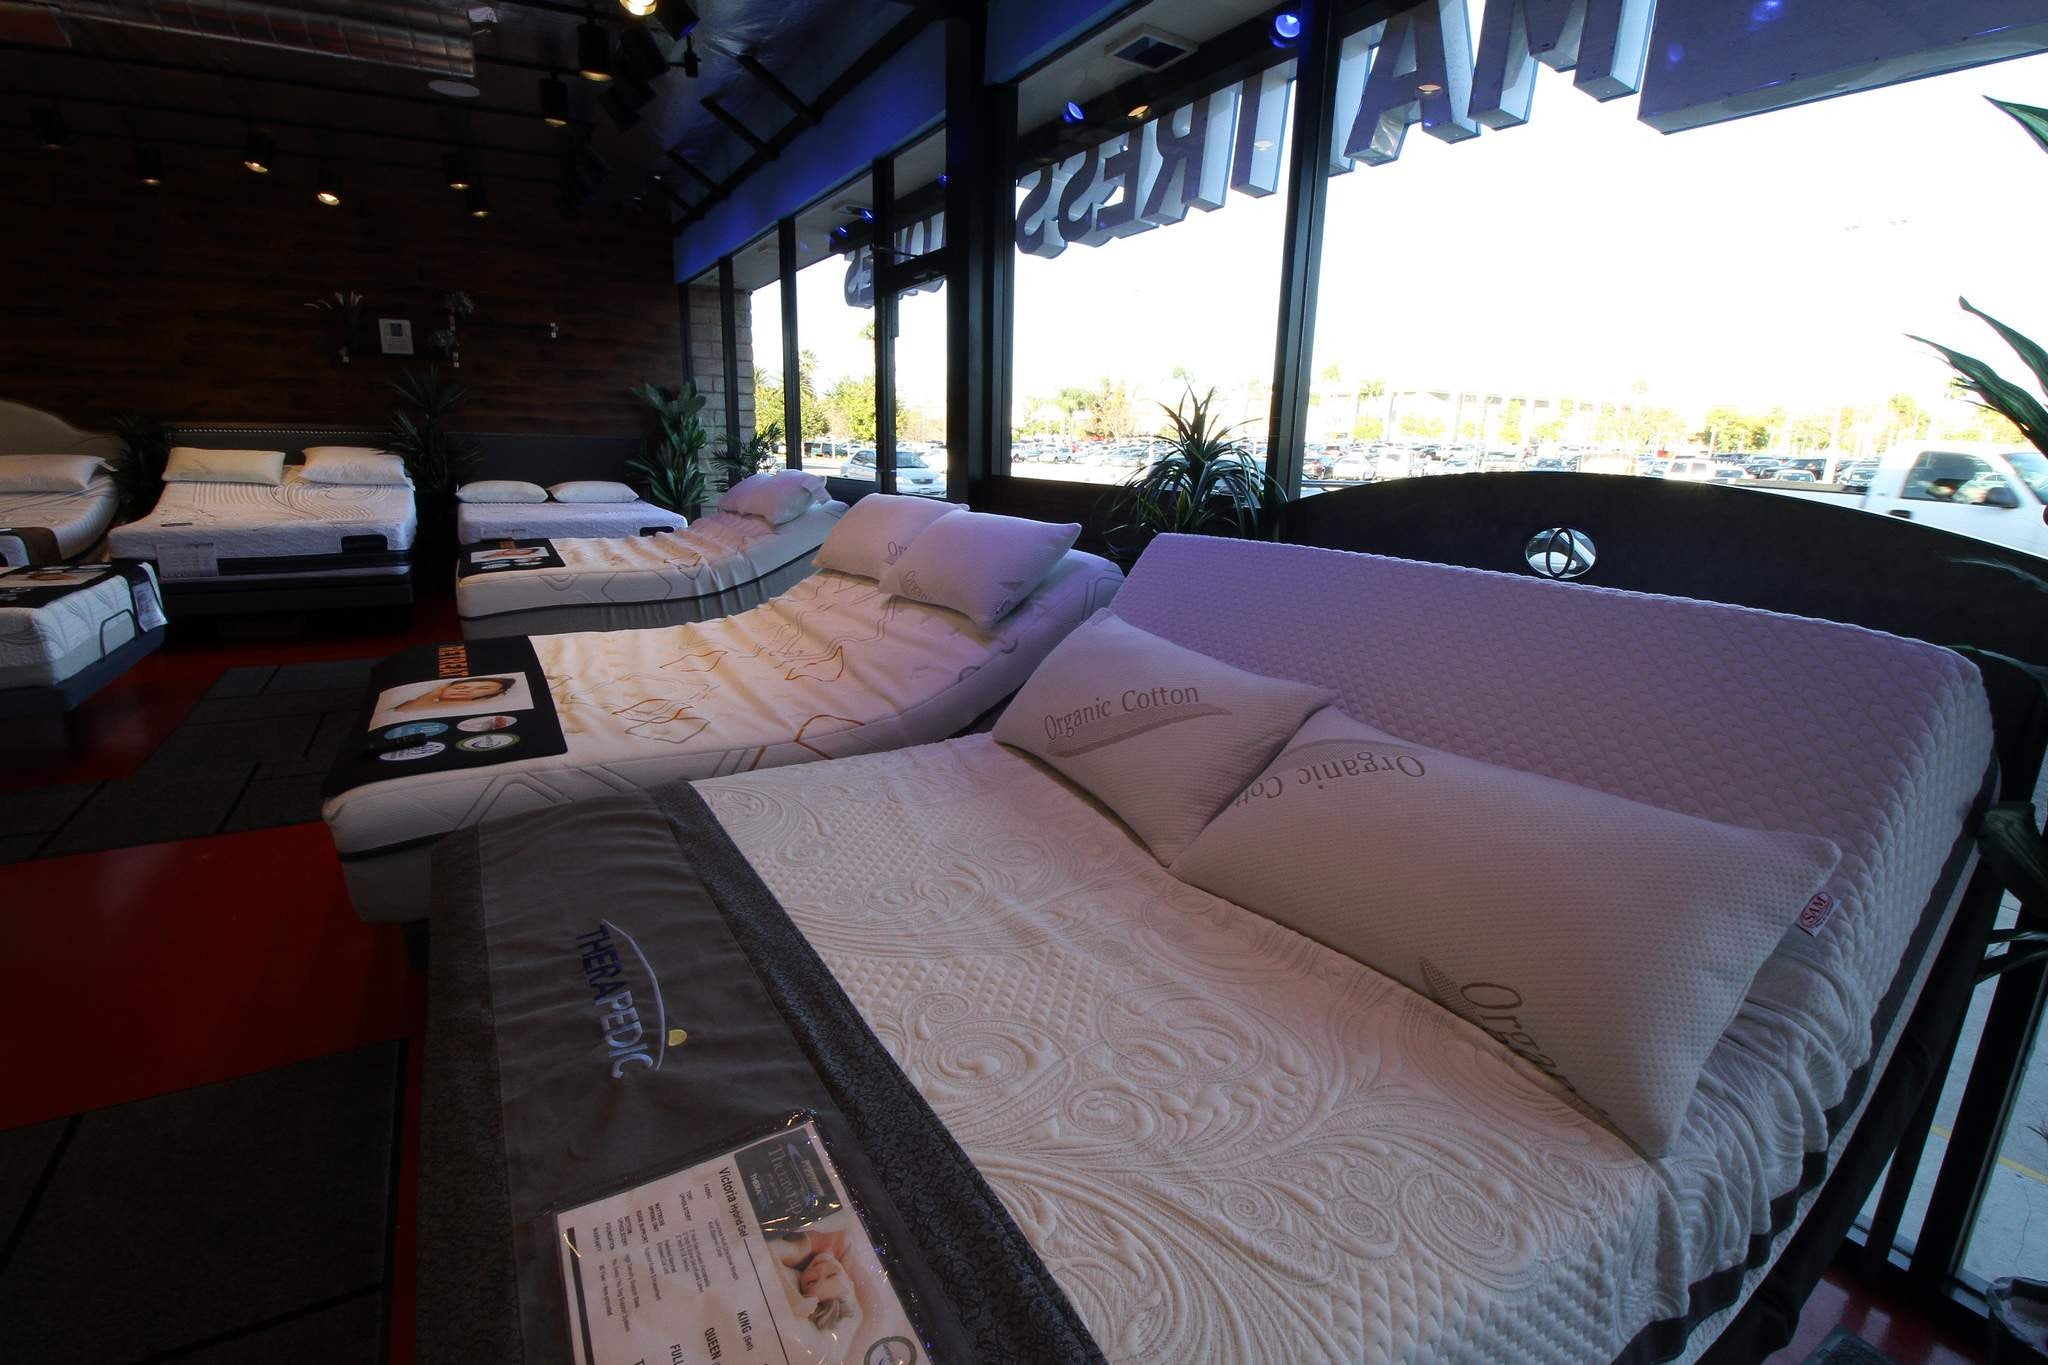 Wonderful ... Woodland Hills Mattress Stores Los Angeles; Adjustable Beds Topanga  Canyon Mattress Stores Los Angeles ...